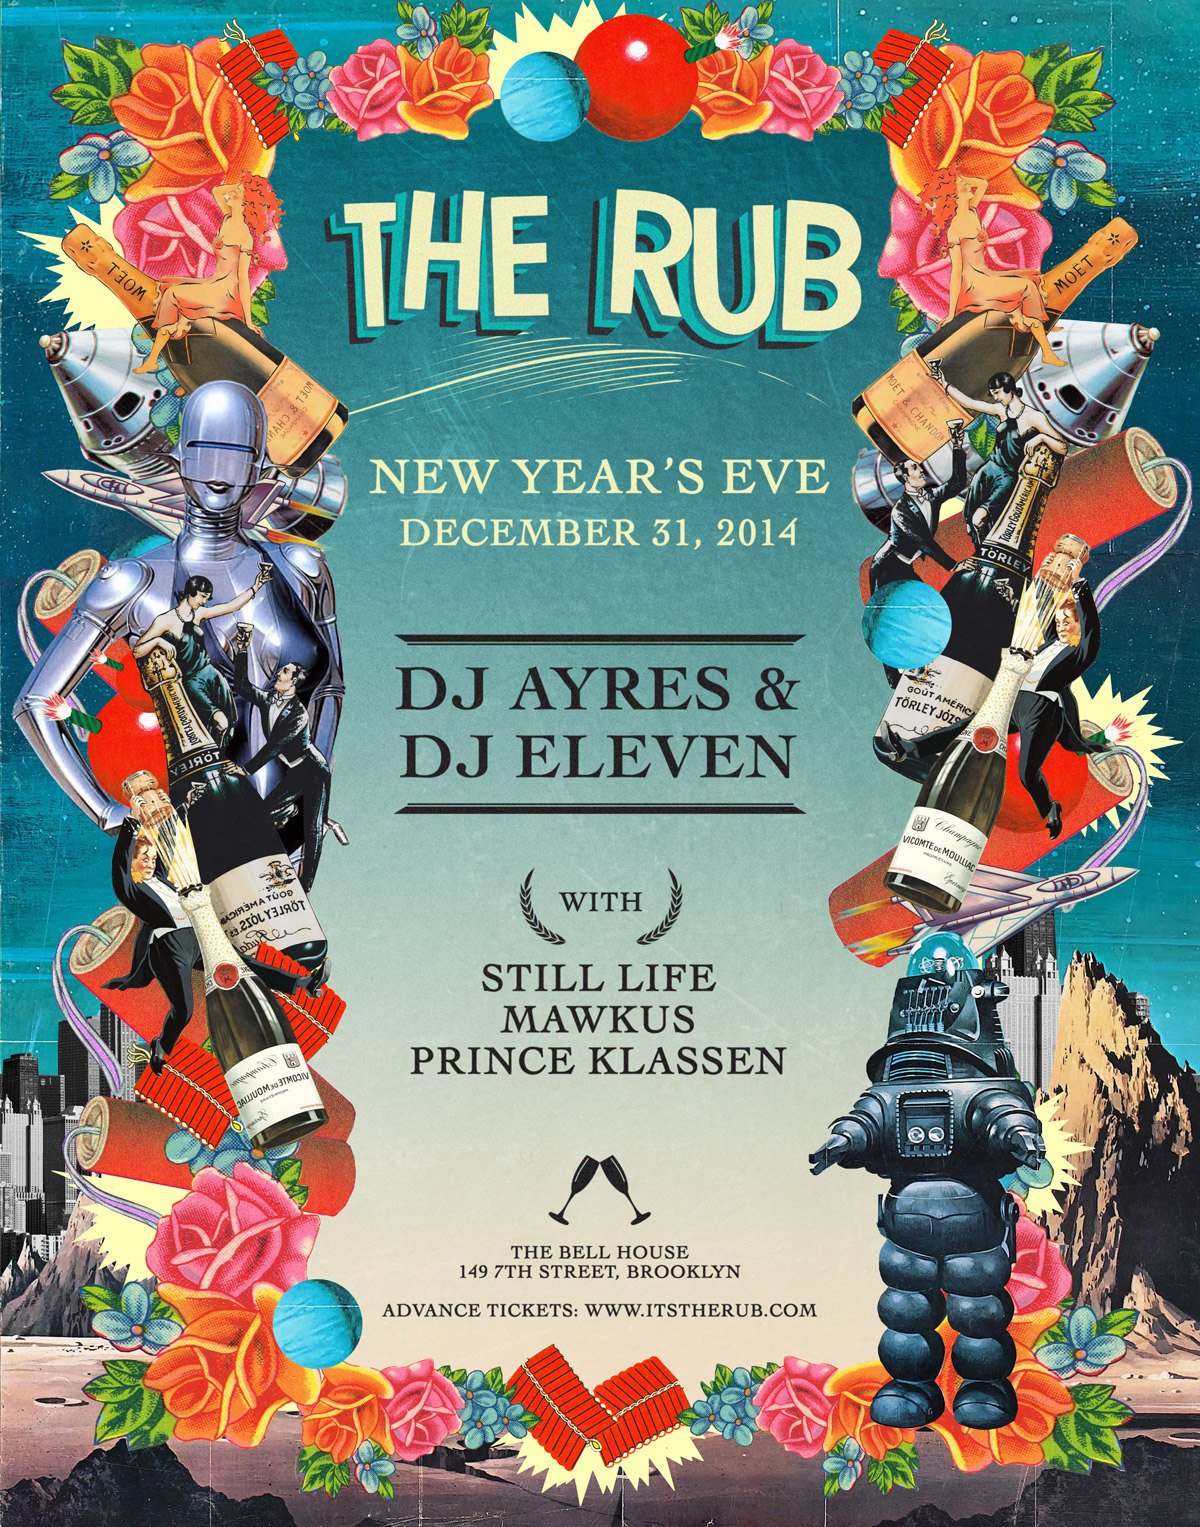 The Rub NYE 2014